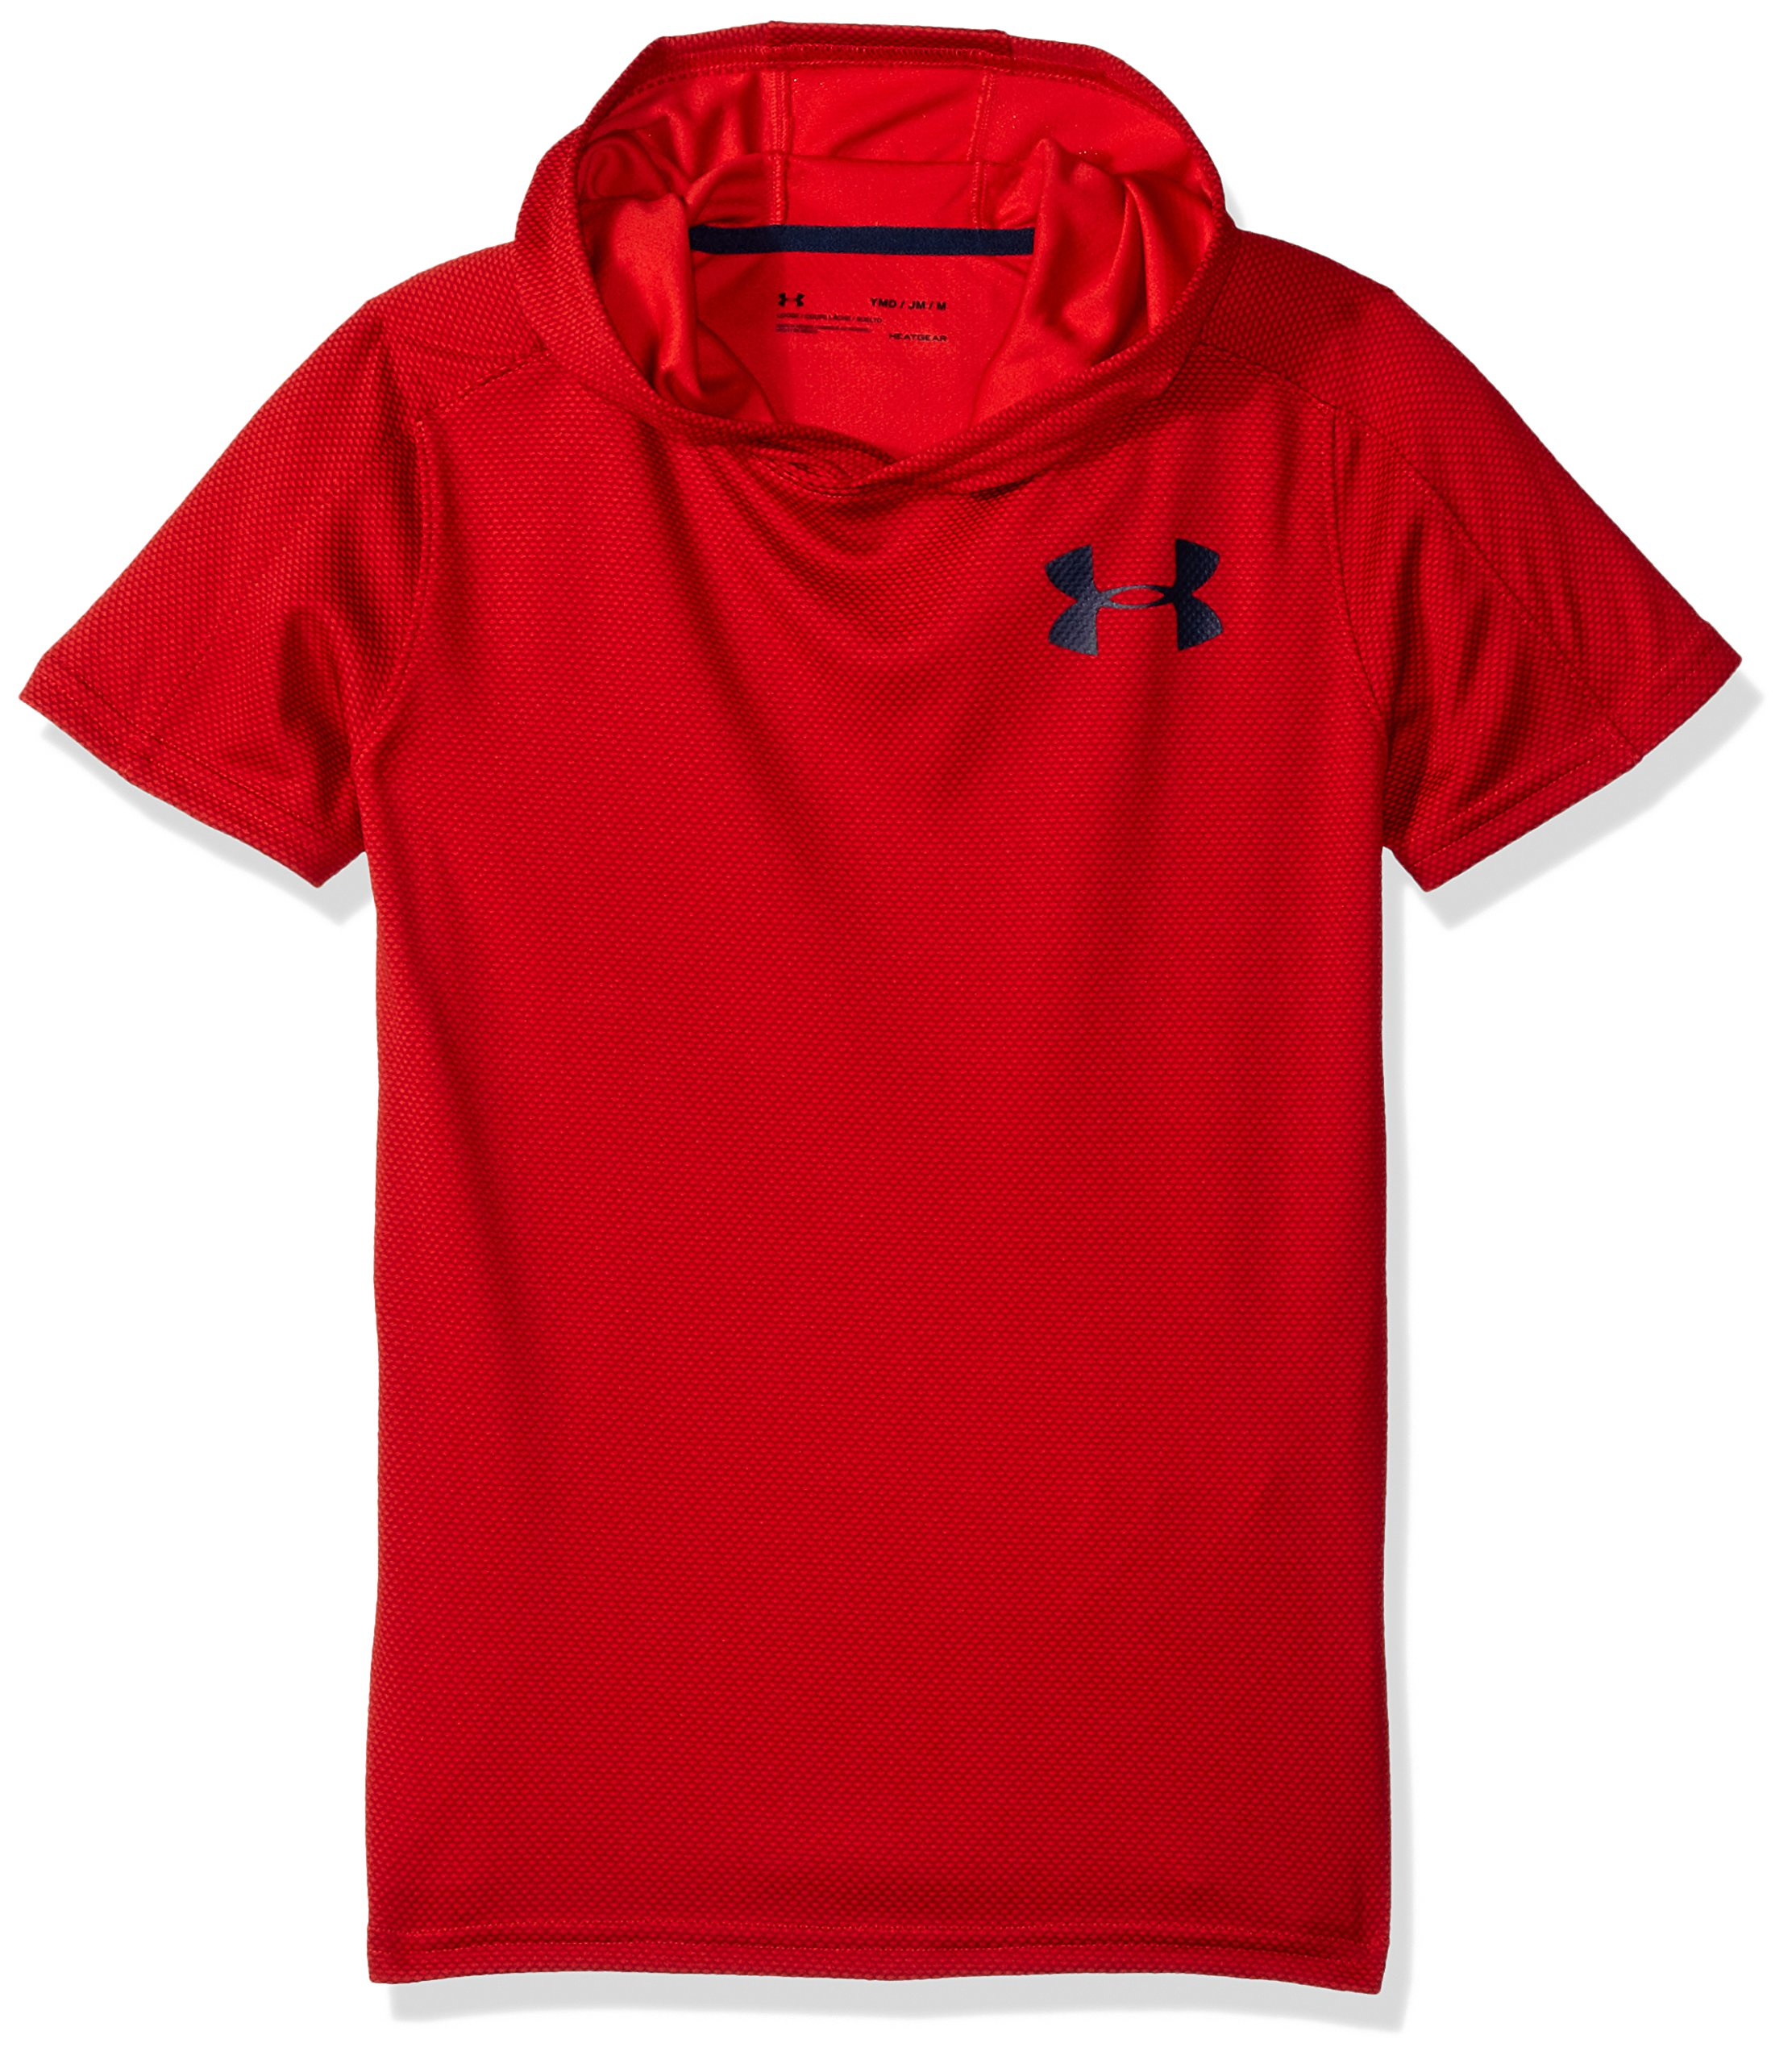 Under Armour Boys' Tech Textured Short Sleeve Hoodie, Red (600)/Academy, Youth X-Large by Under Armour